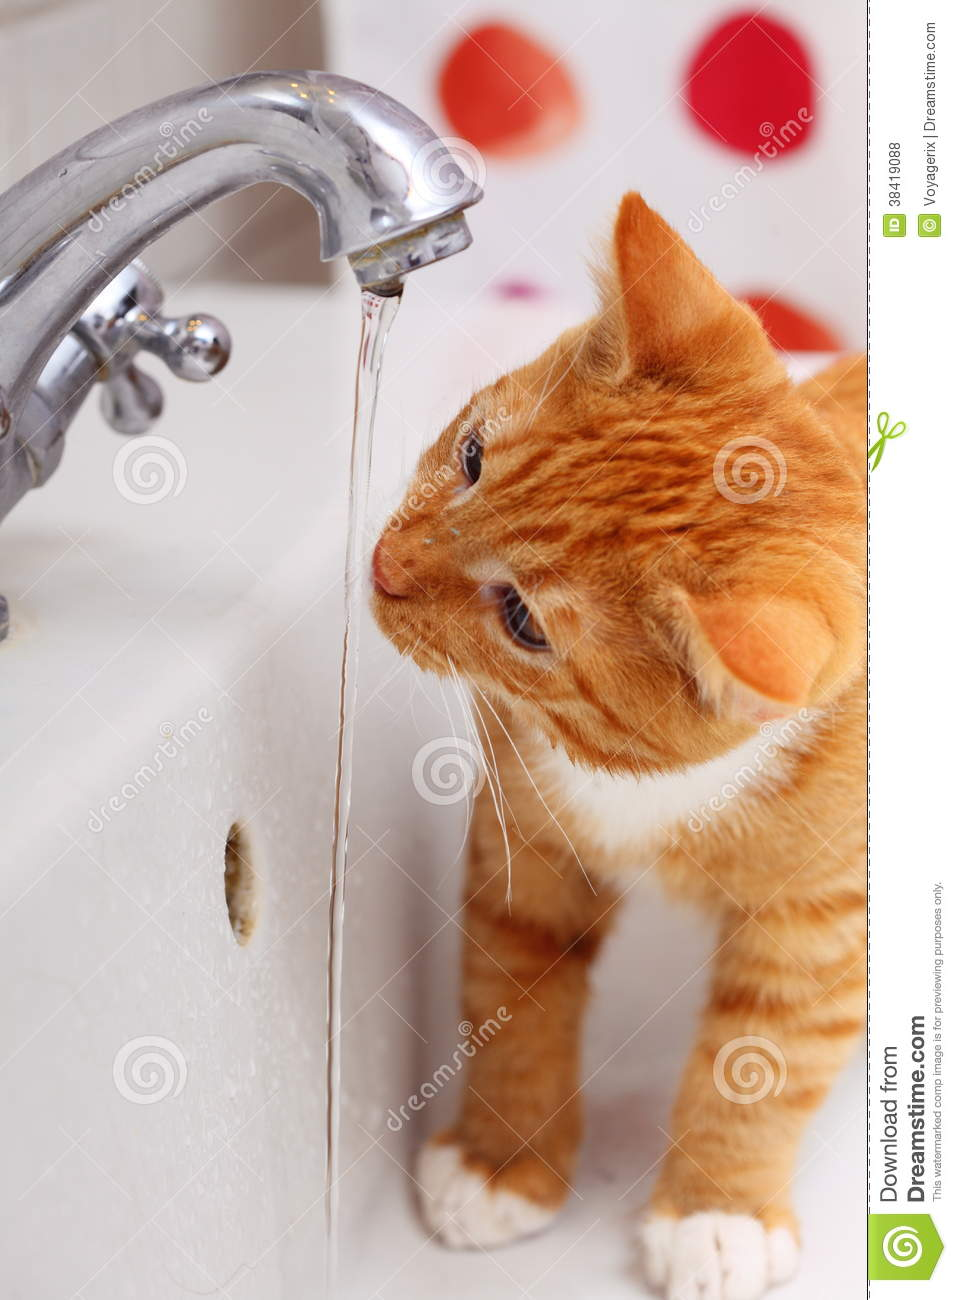 Animals At Home Red Cat Pet Kitty Drinking Water In Bathroom Royalty ...